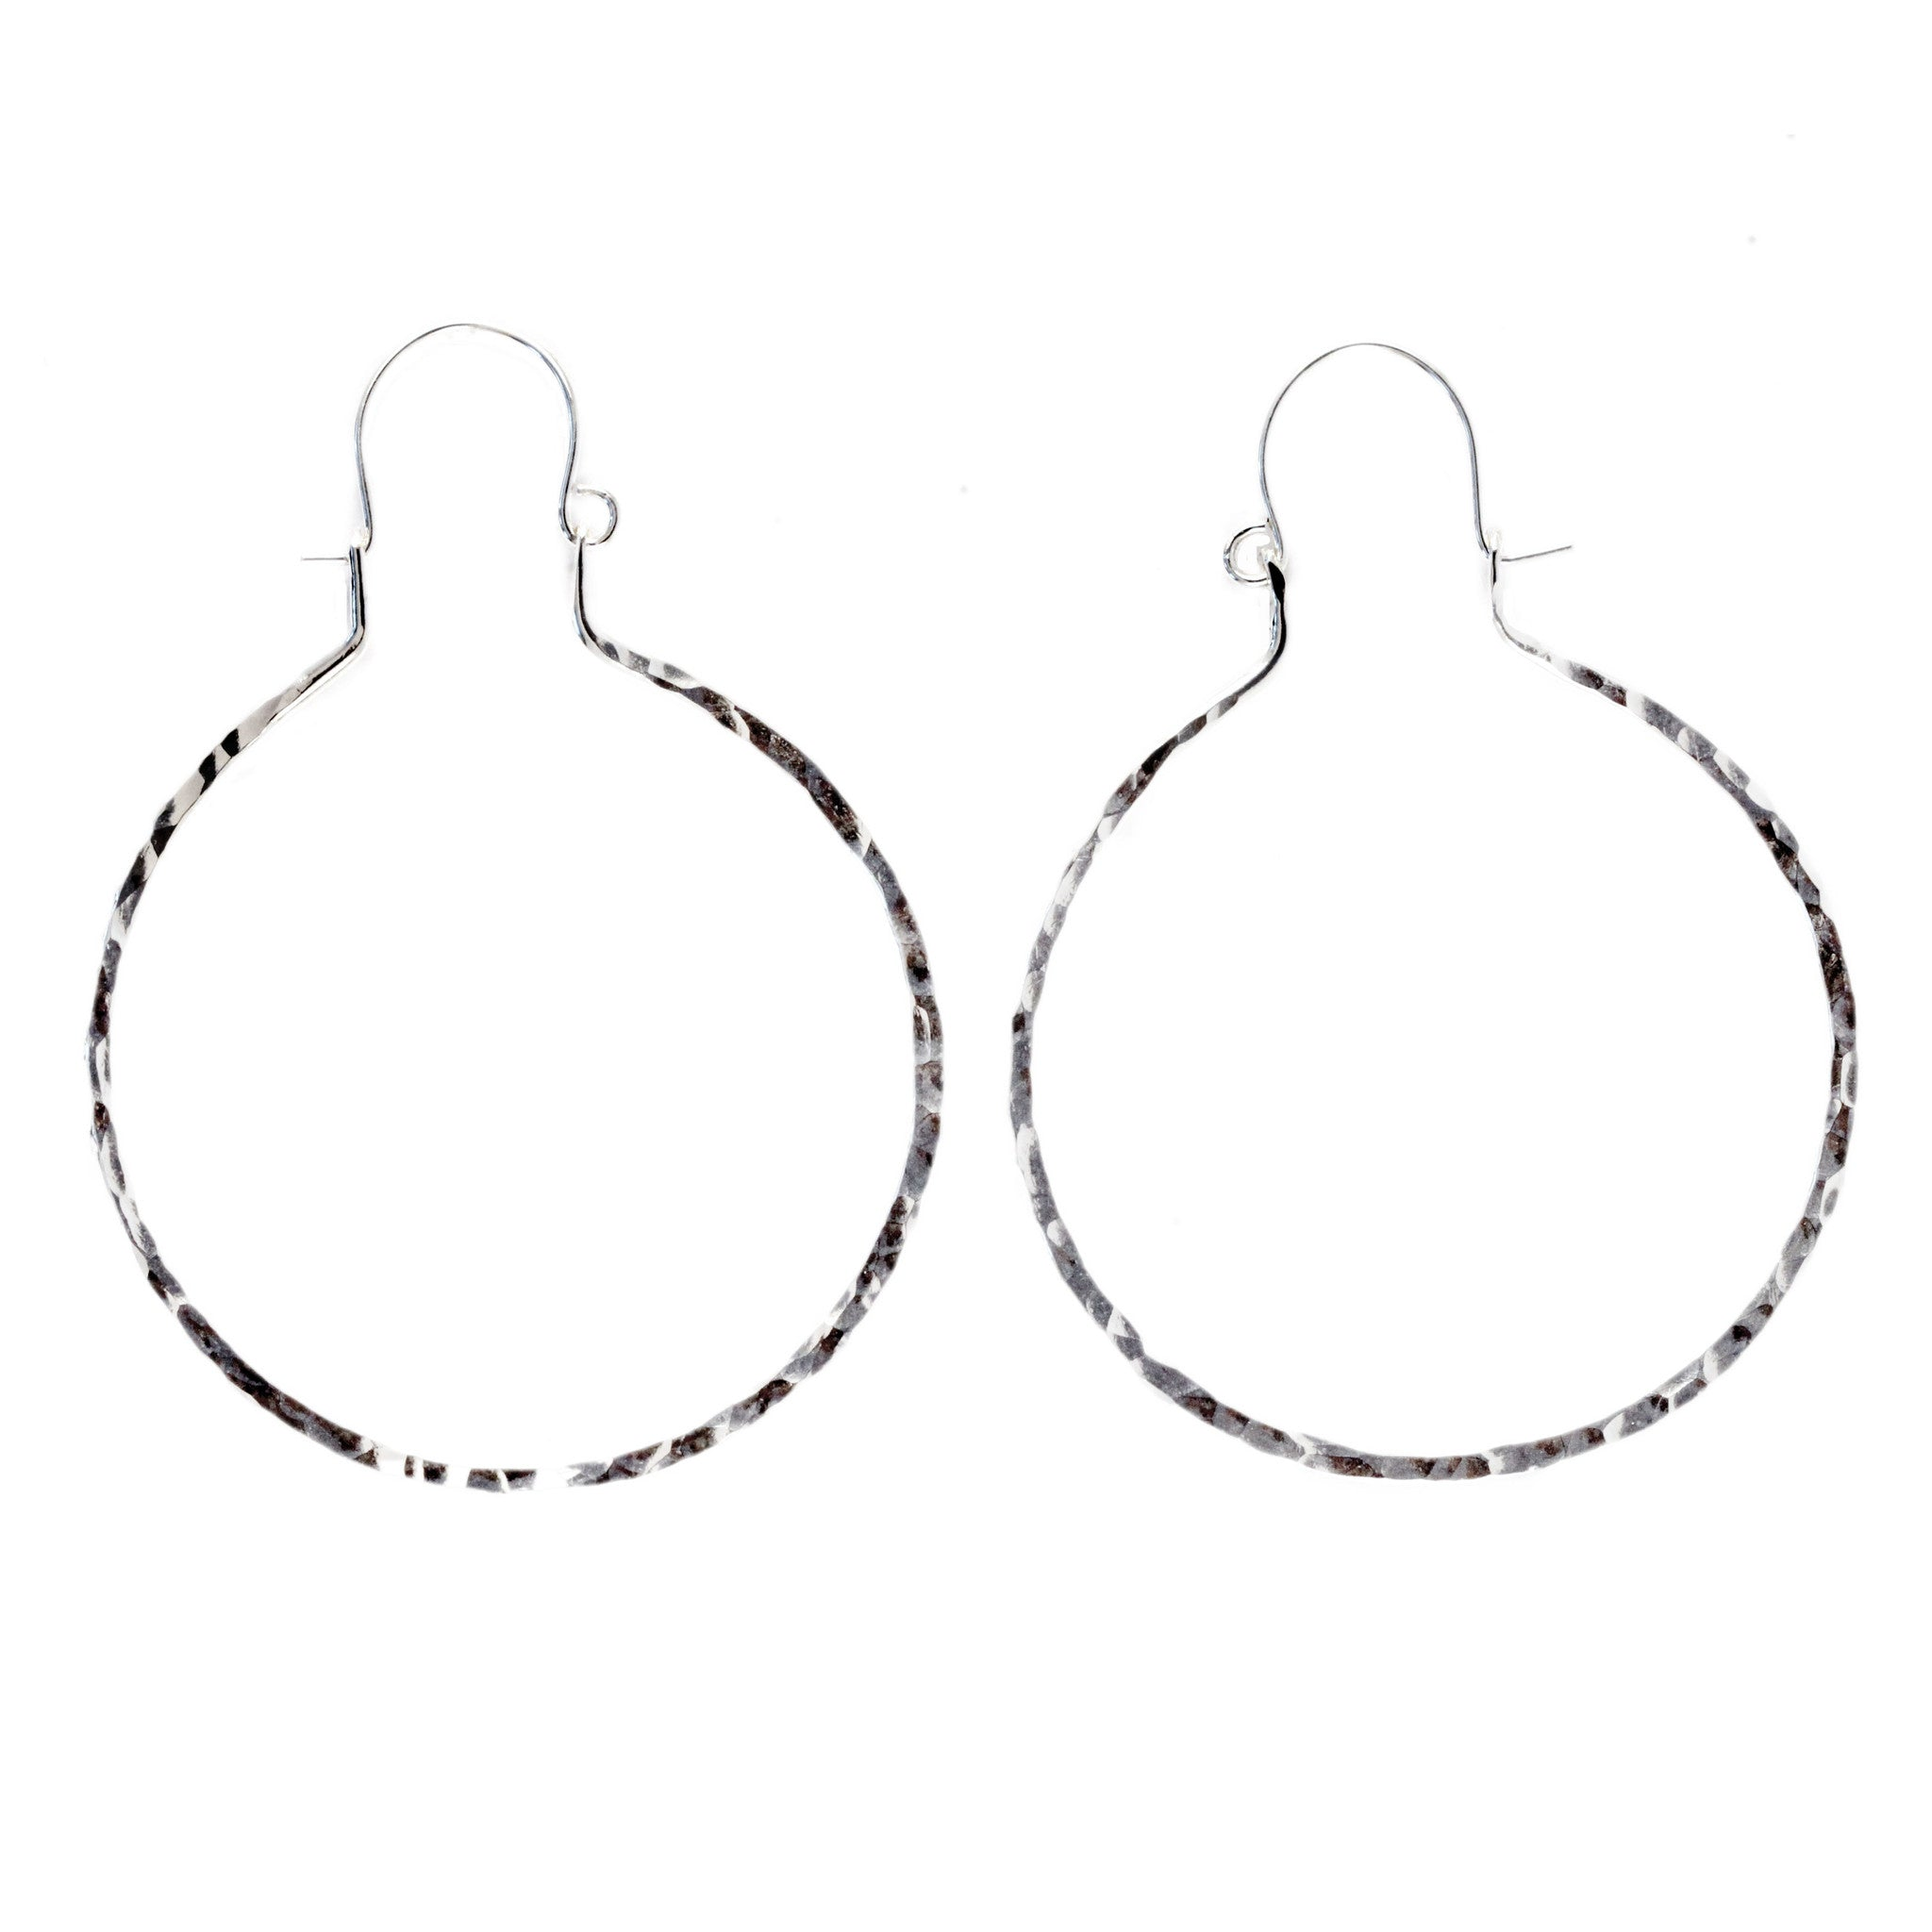 hammered hoop earrings, aquarian thoughts jewelry